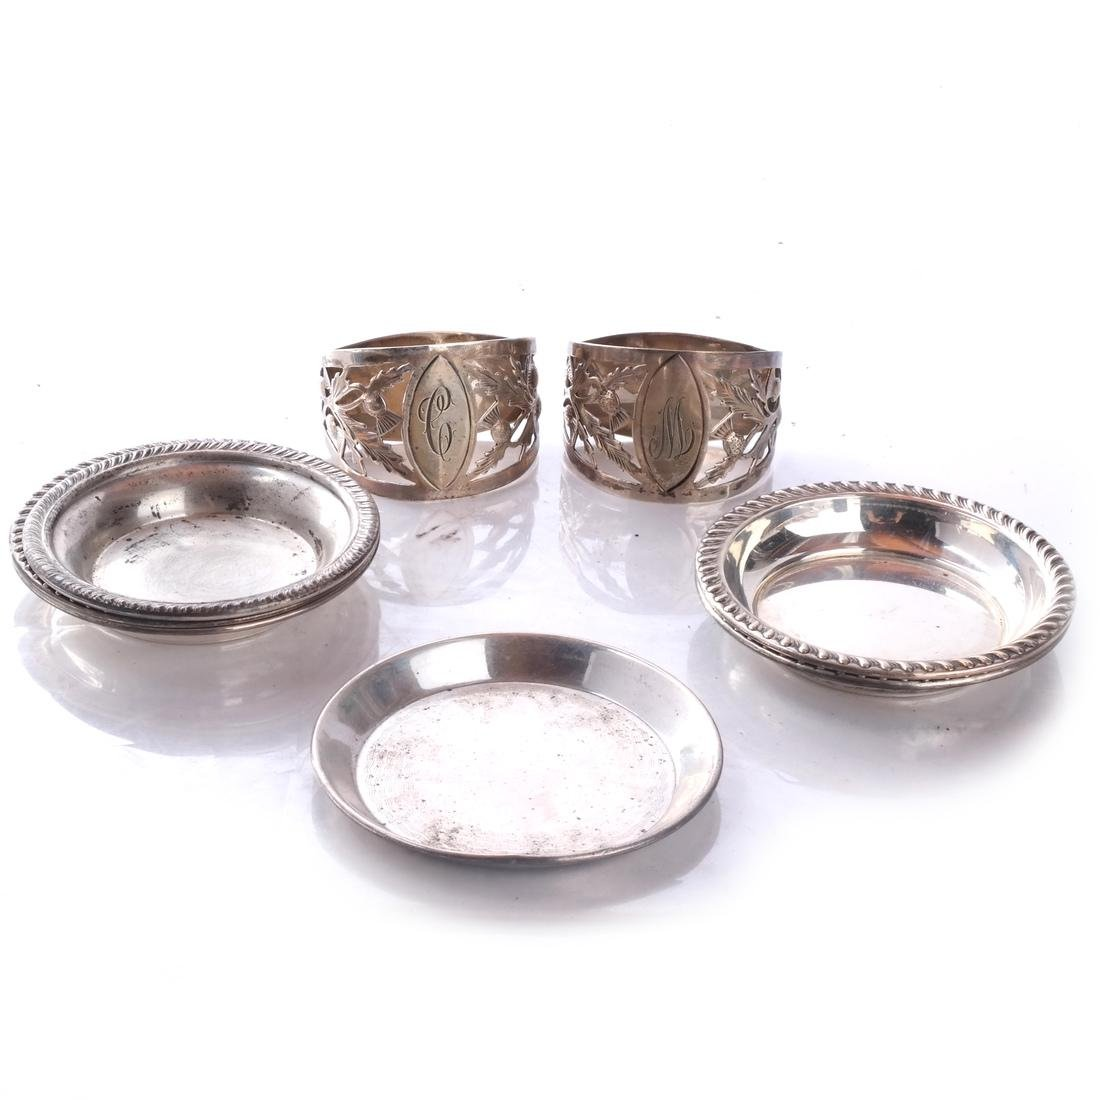 14 Sterling Silver Items: Spoons, Ashtrays, +